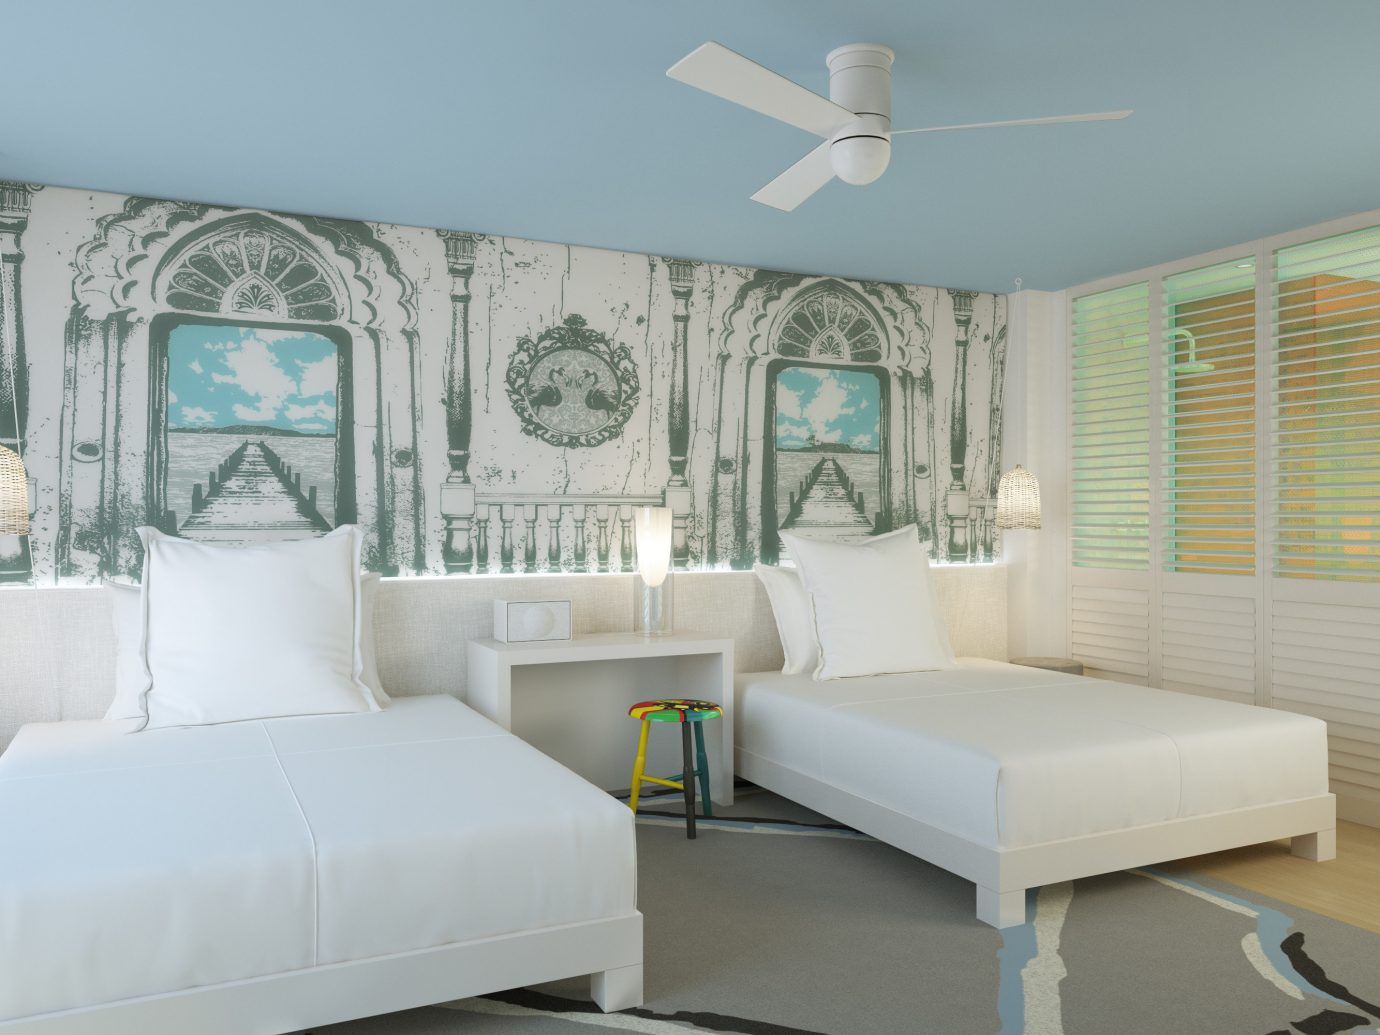 Bahamas caribbean Trip Ideas indoor wall floor room interior design ceiling bed frame home Architecture Bedroom bed window estate Suite real estate bed sheet window covering interior designer window treatment furniture living room mattress